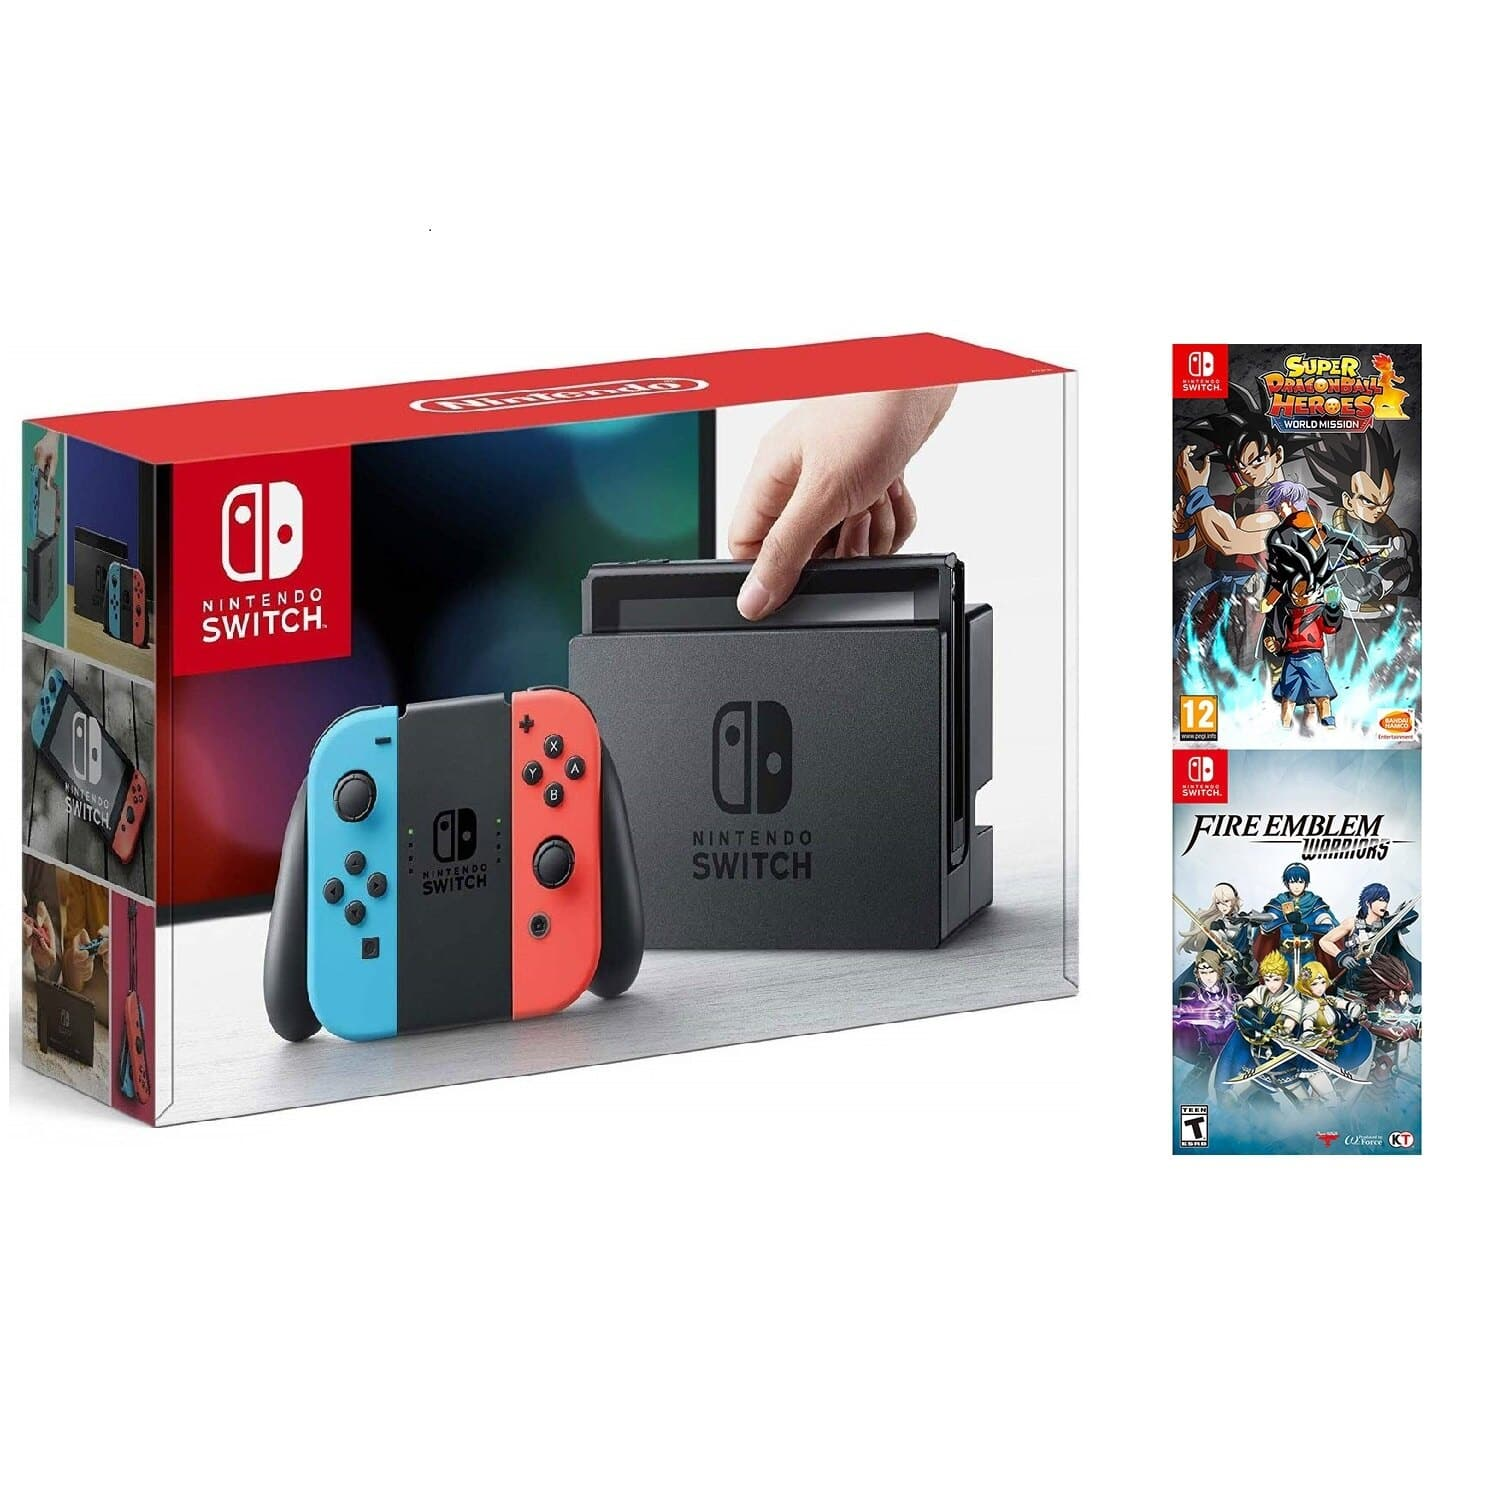 Nintendo Switch Neon Console + Fire Emblem Warriors & Dragon Ball Heroes : $319.99 AC + Free Shipping